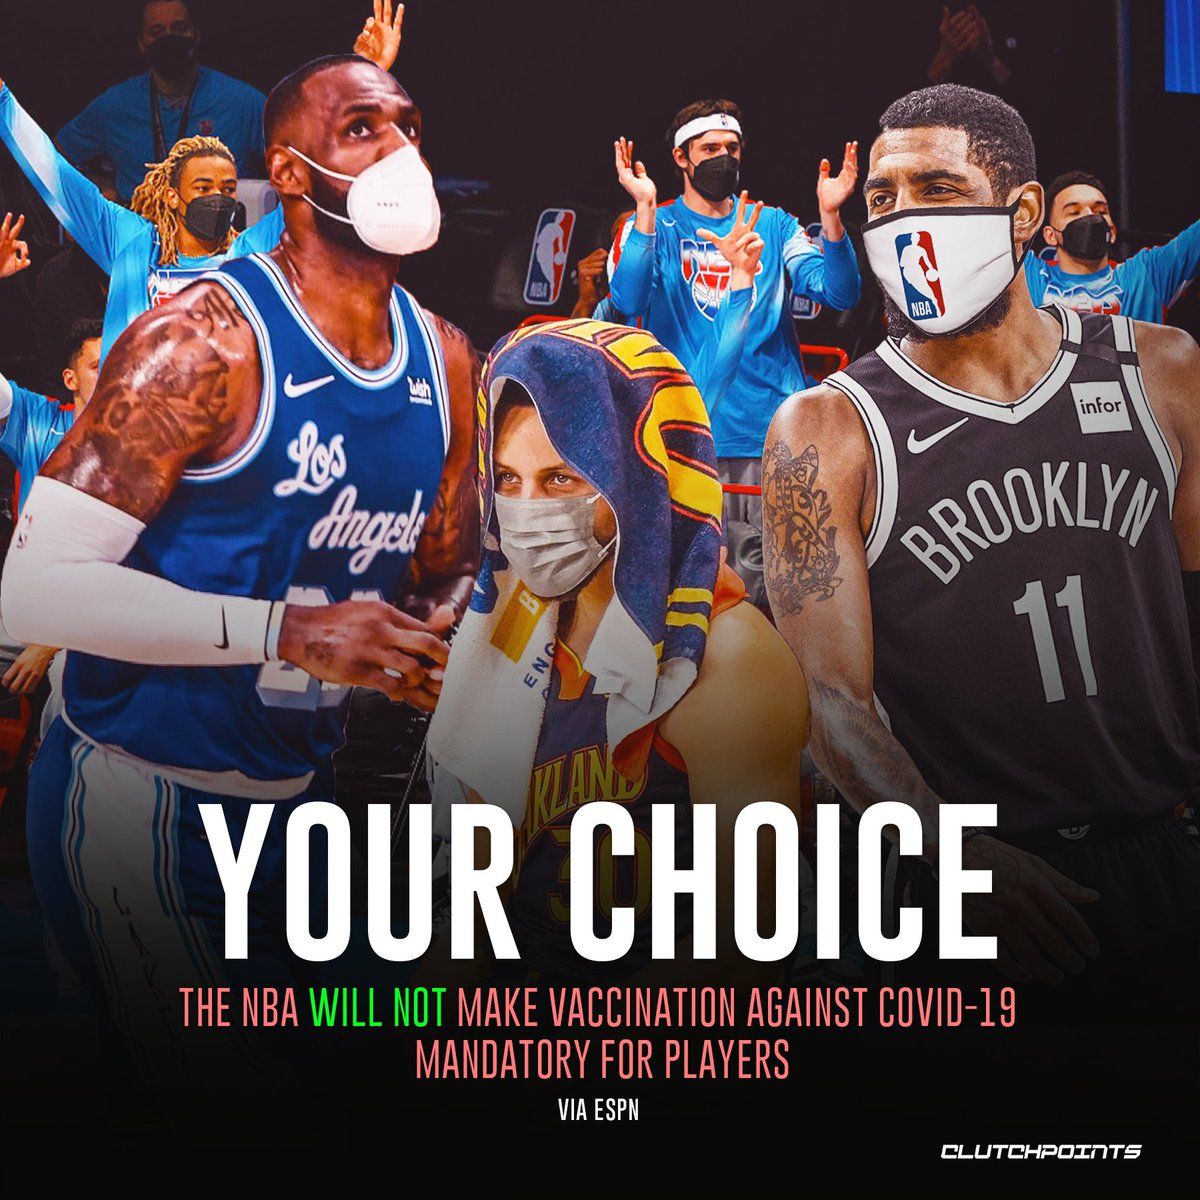 The NBA will mandate COVID-19 vaccinations for referees and most team staff members for the 2021-22 season, but they will not be requiring players to get the vaccine.  Thoughts?